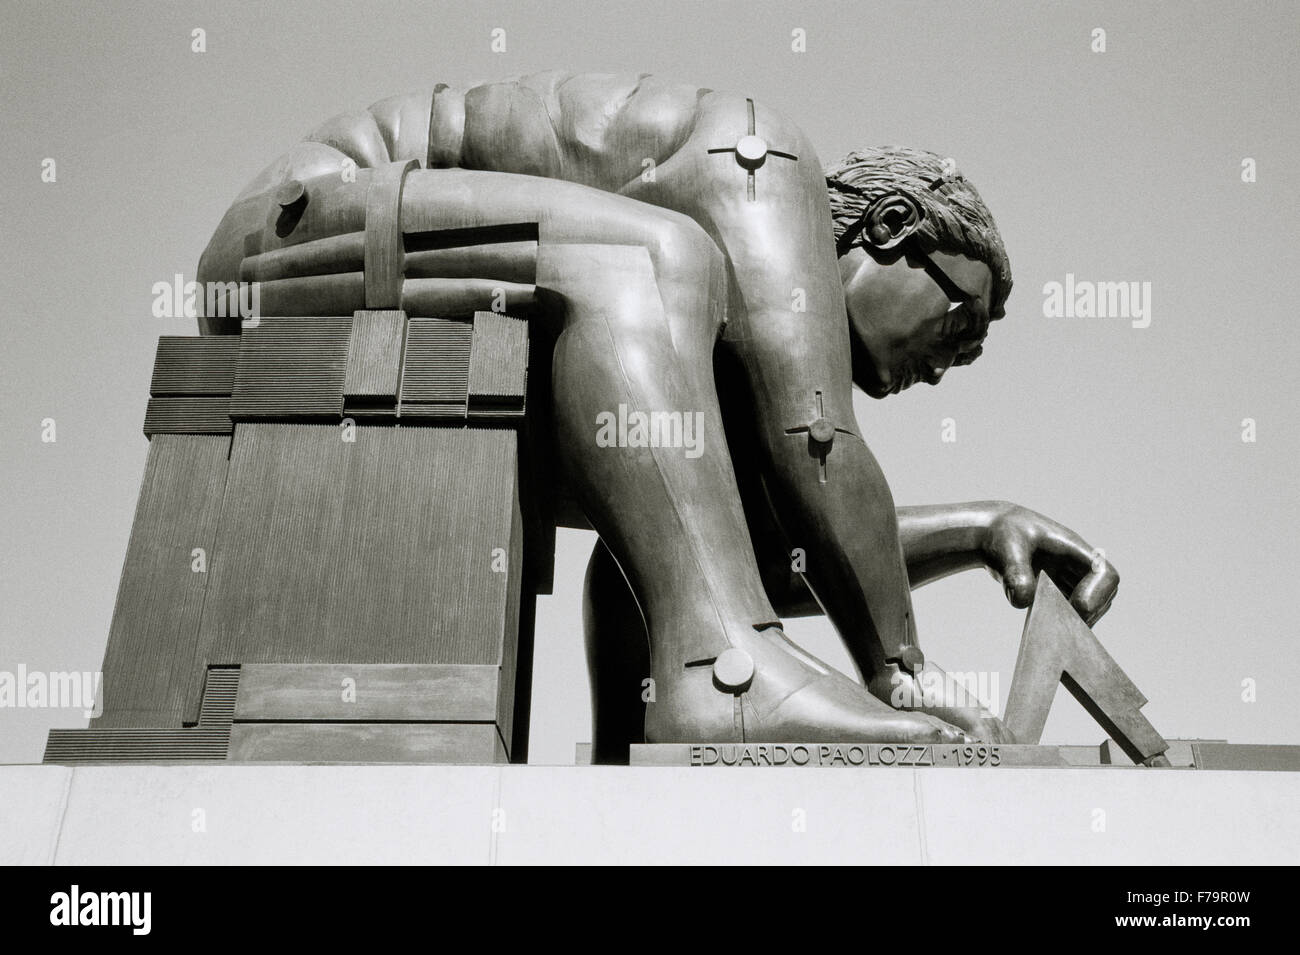 Eduardo Paolozzi sculpture of Sir Isaac Newton in the British Library in London in England in Great Britain in the Stock Photo